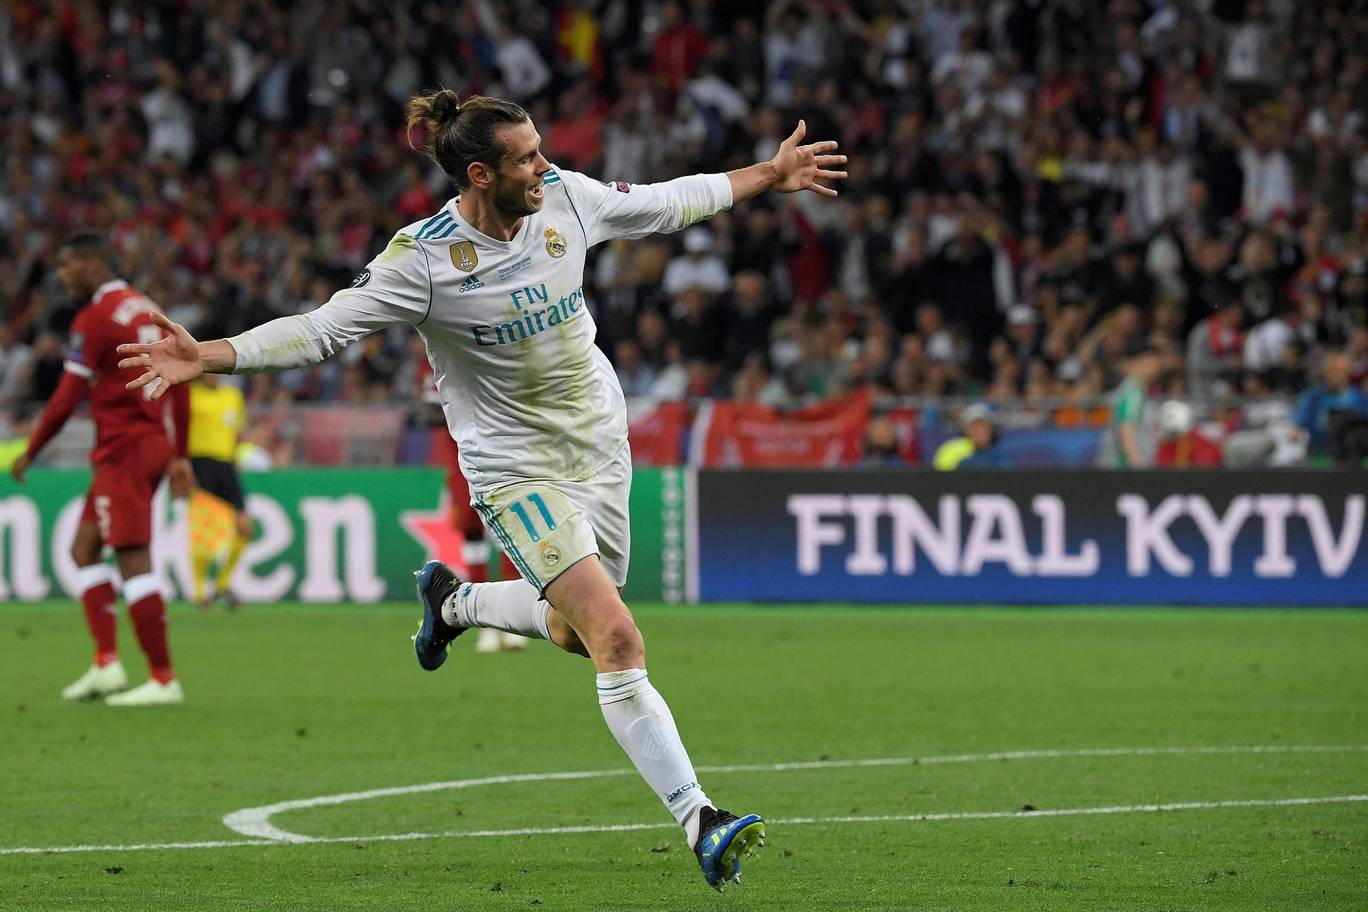 Real Madrid's Gareth Bale celebrates his second goal against Liverpool in the 2018 Champions League final. (Getty Images)